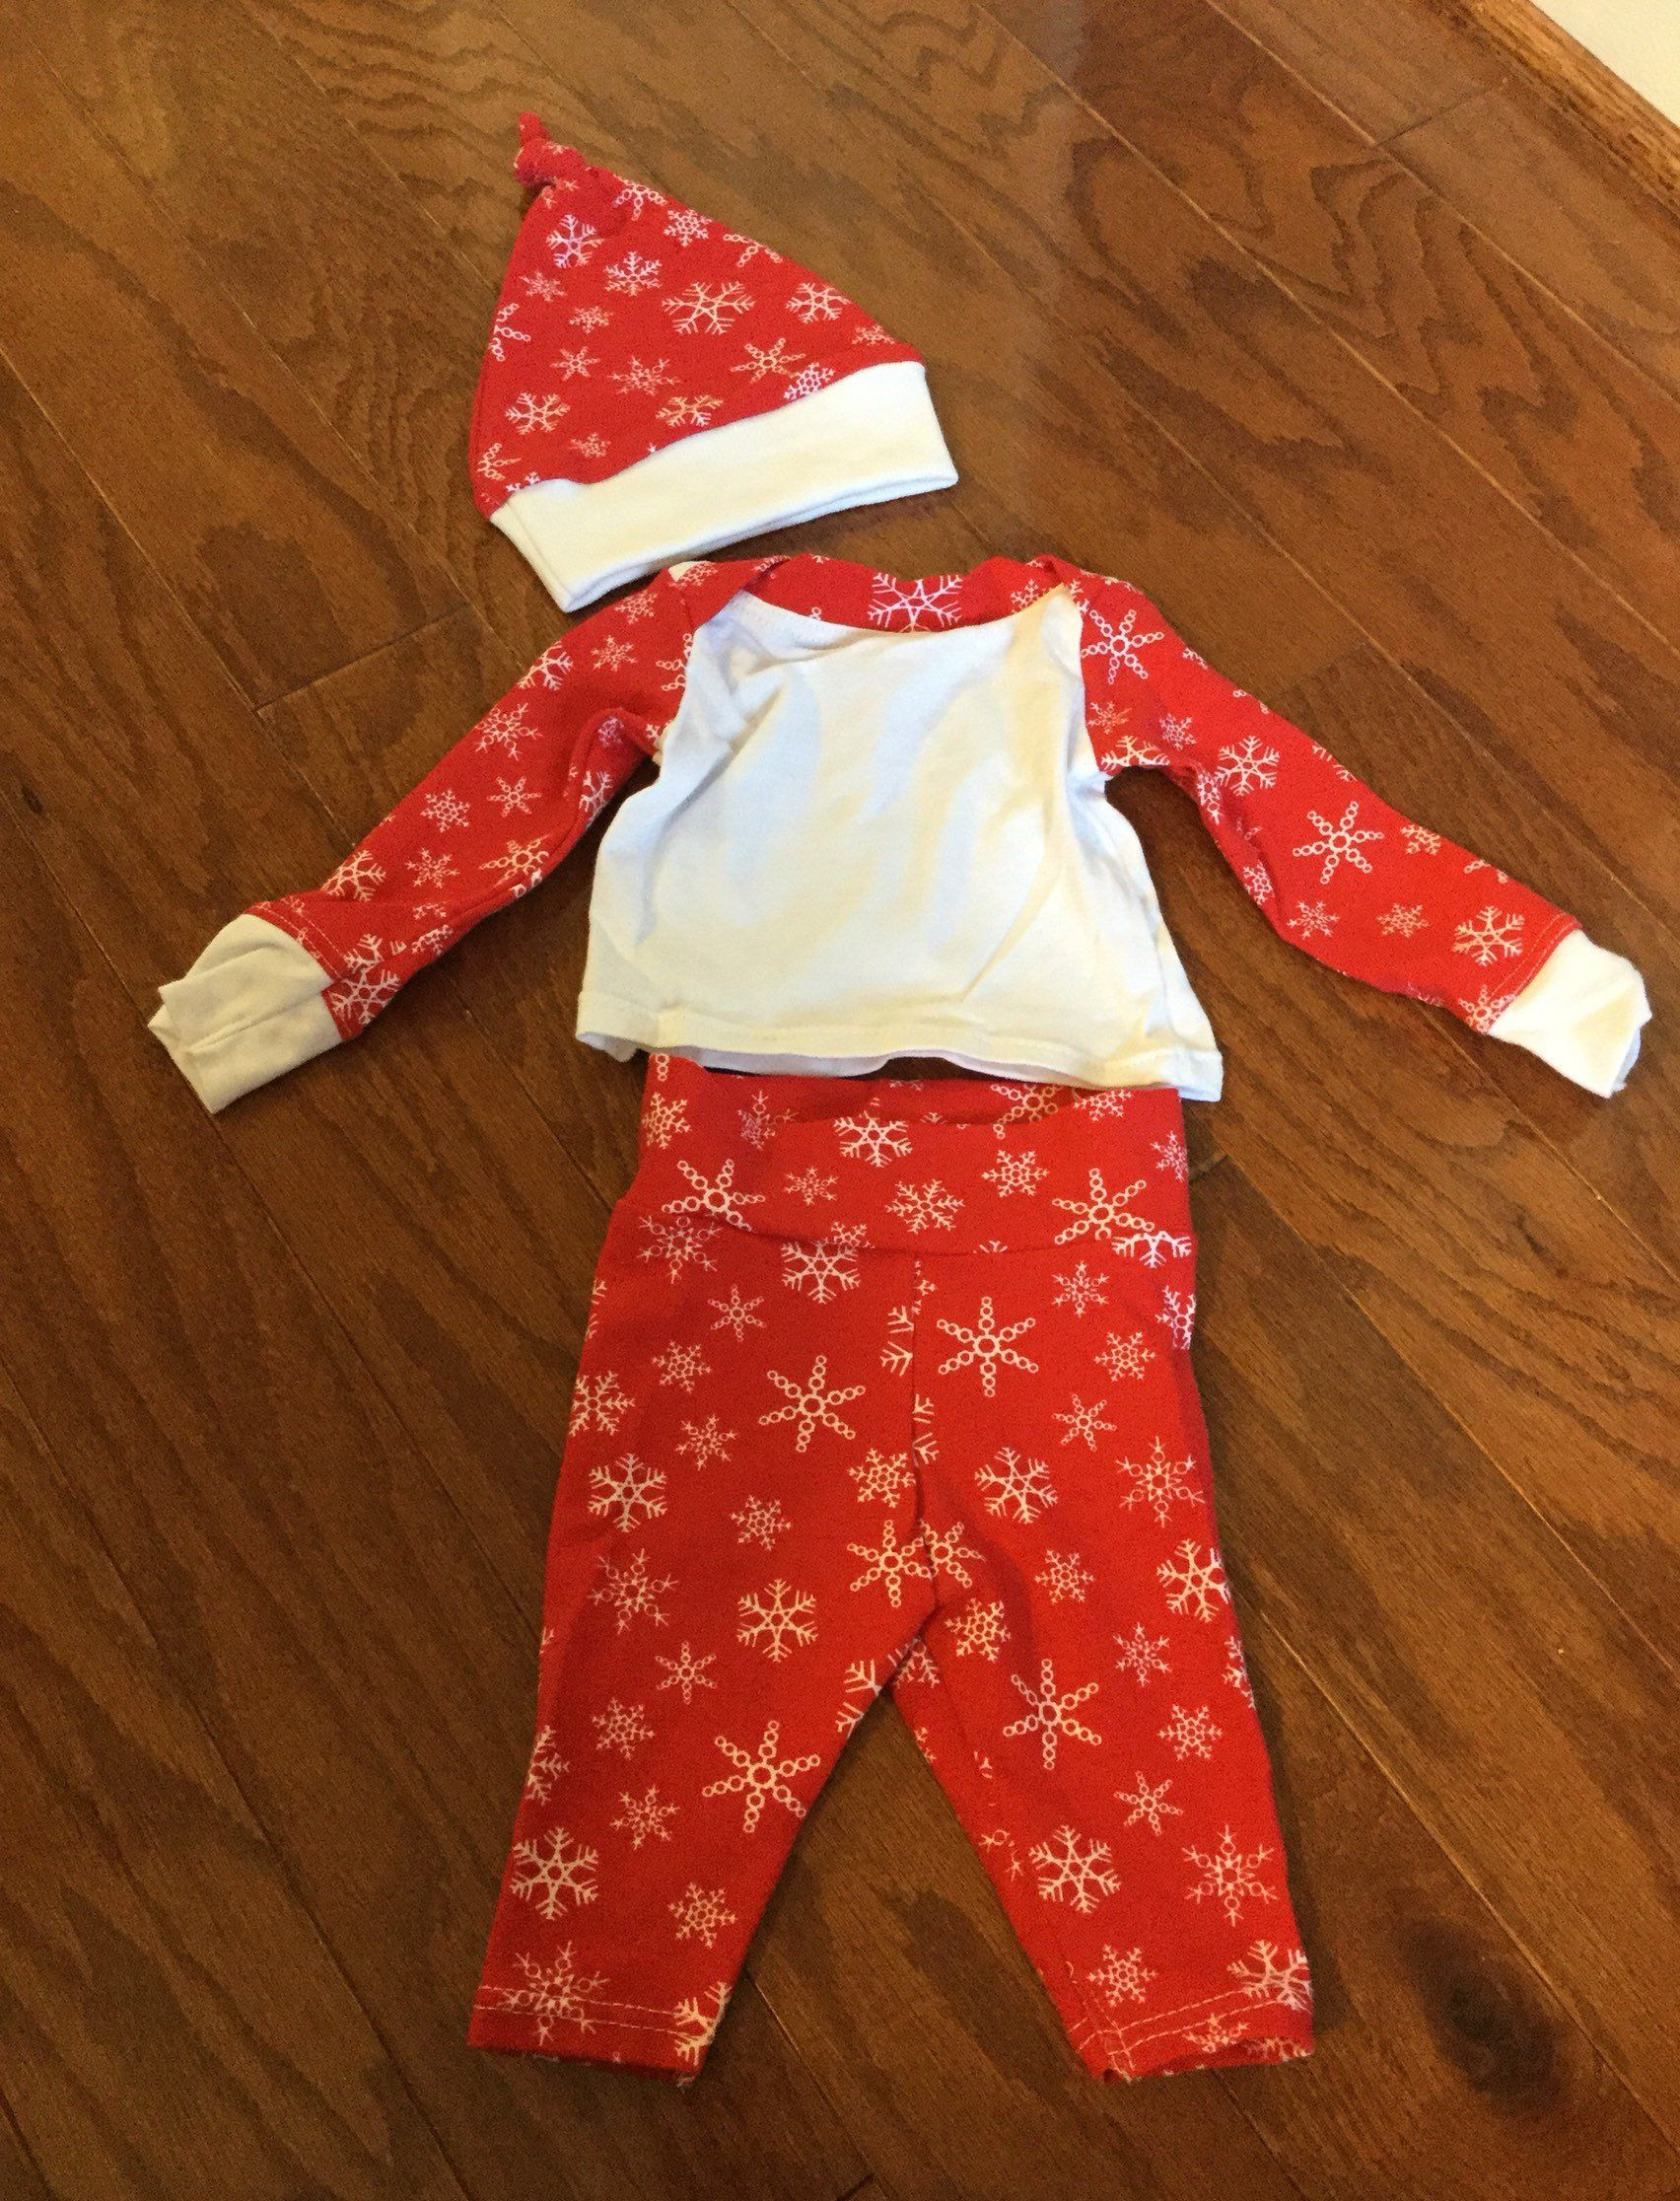 d04aa4551 Preemie Outfit, Baby's 1st Christmas Outfit, Holiday Baby Outfit ...